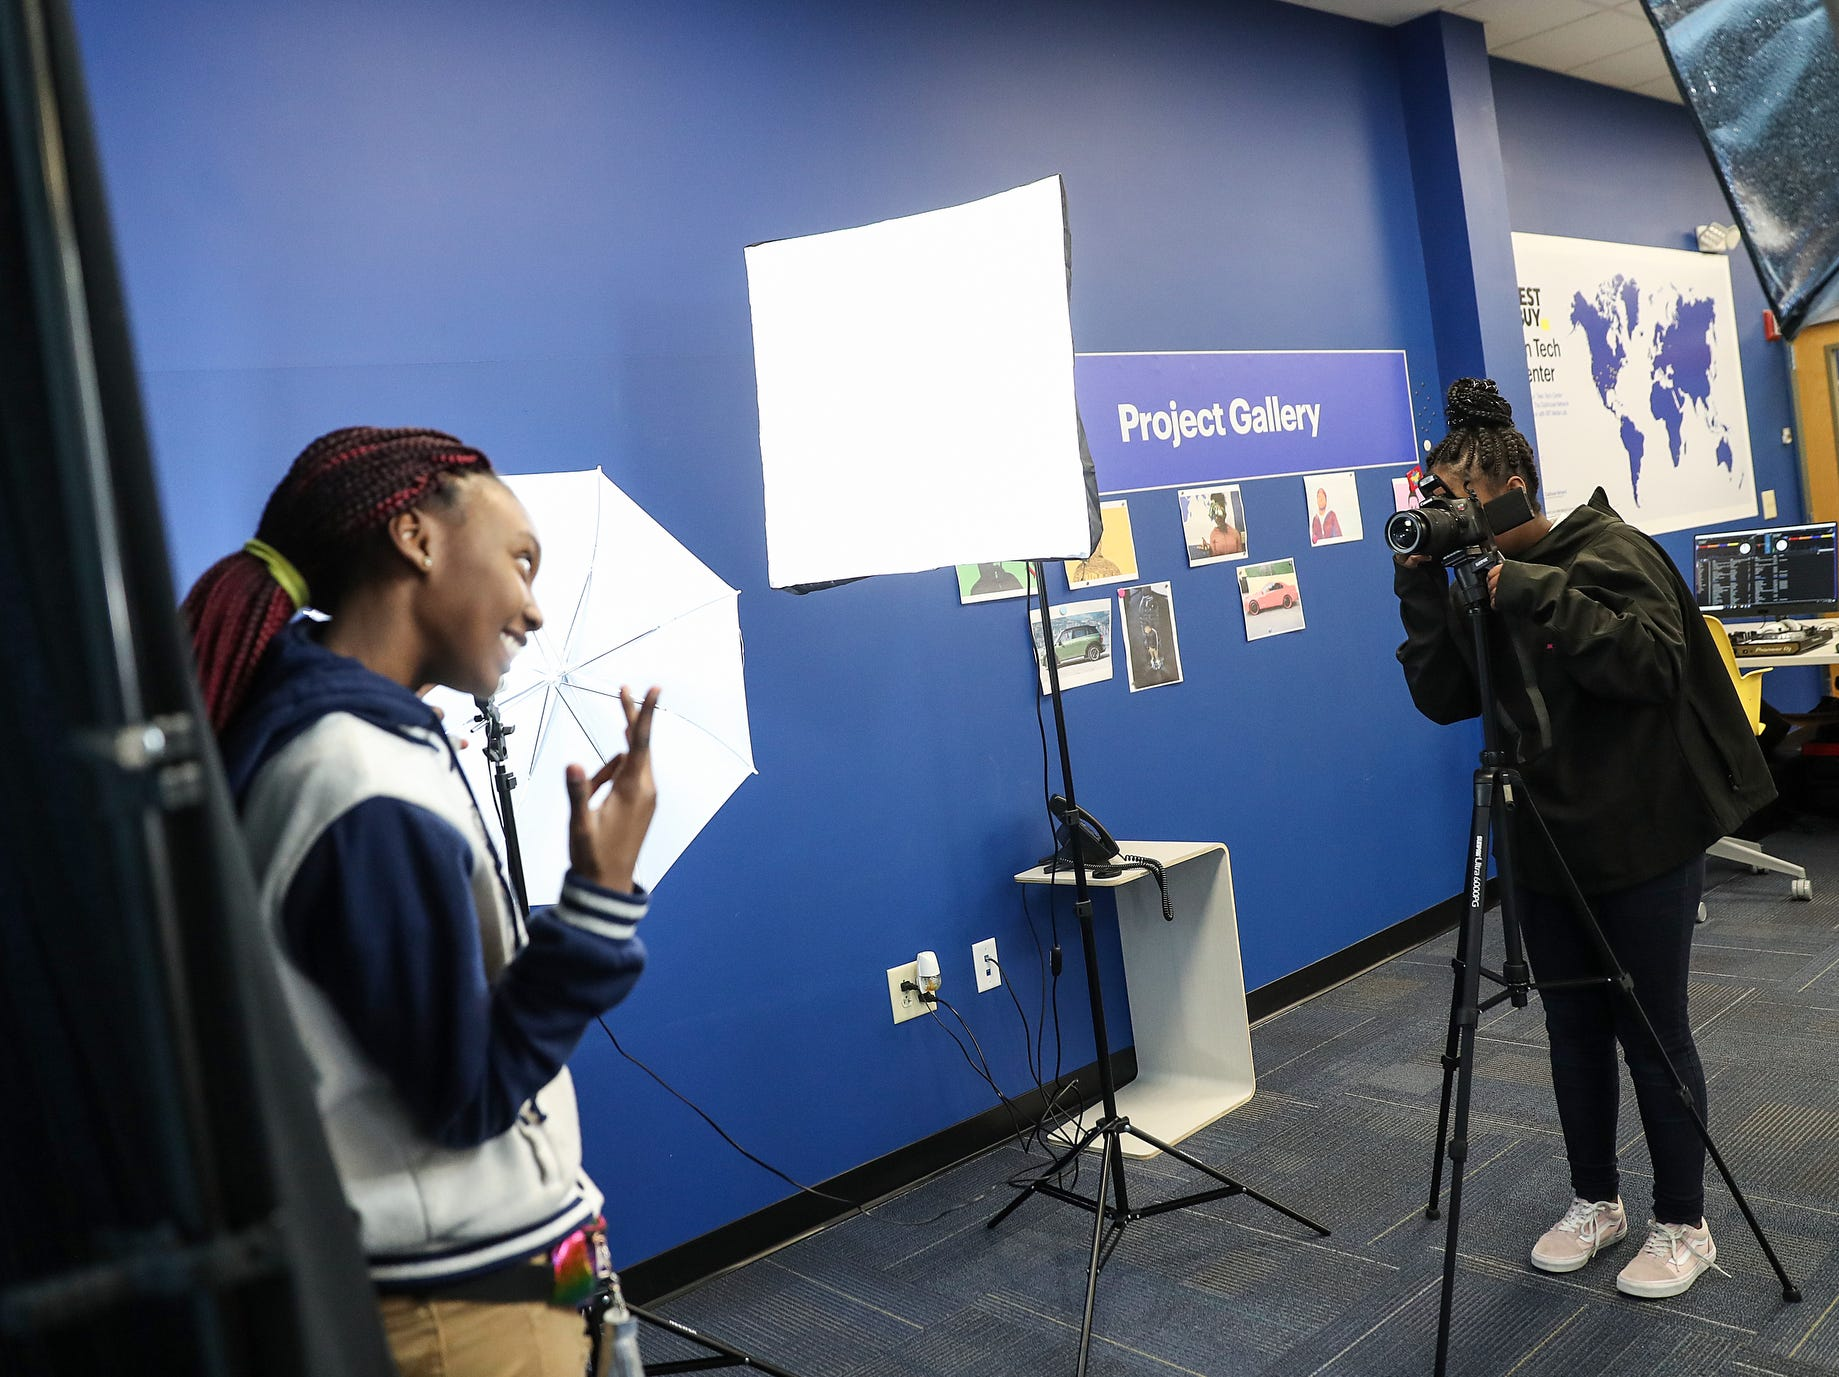 From left, Gabby Eaves, 13, poses for photos taken by Jamya Members, 12, during the opening of the Best Buy Teen Tech Center at the MLK Community Center in Indianapolis, Tuesday, Jan. 29, 2019.